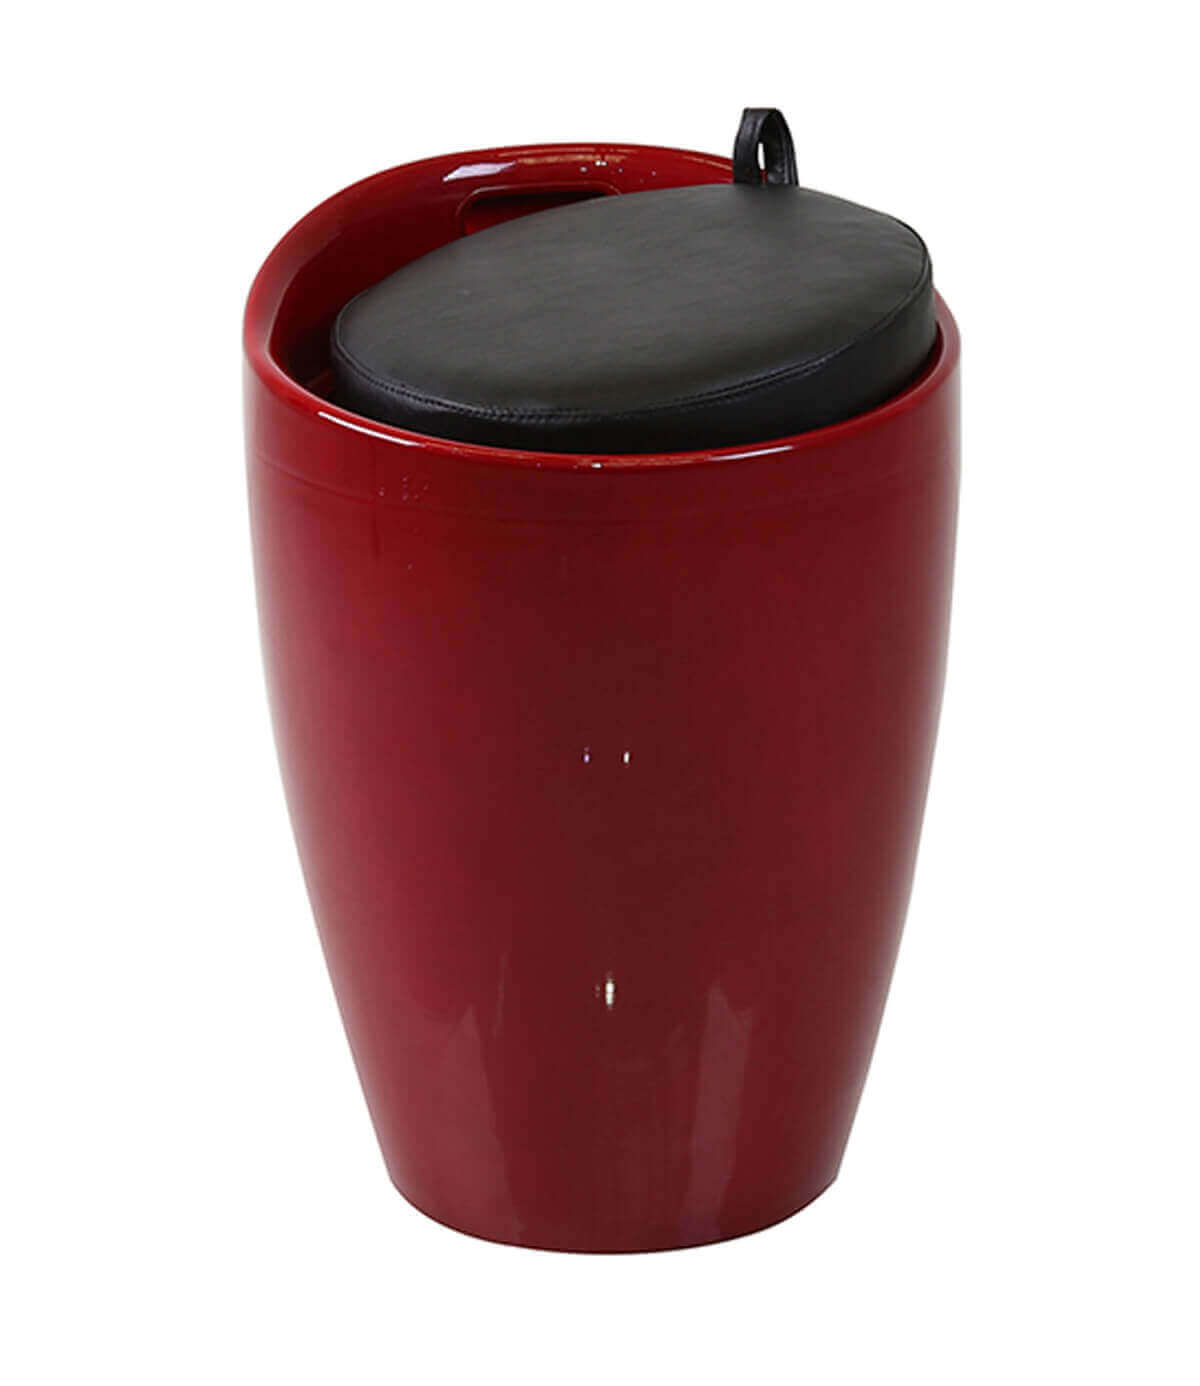 Barcelona Red High Gloss Storage Ottoman Stool with Faux Leather Seat